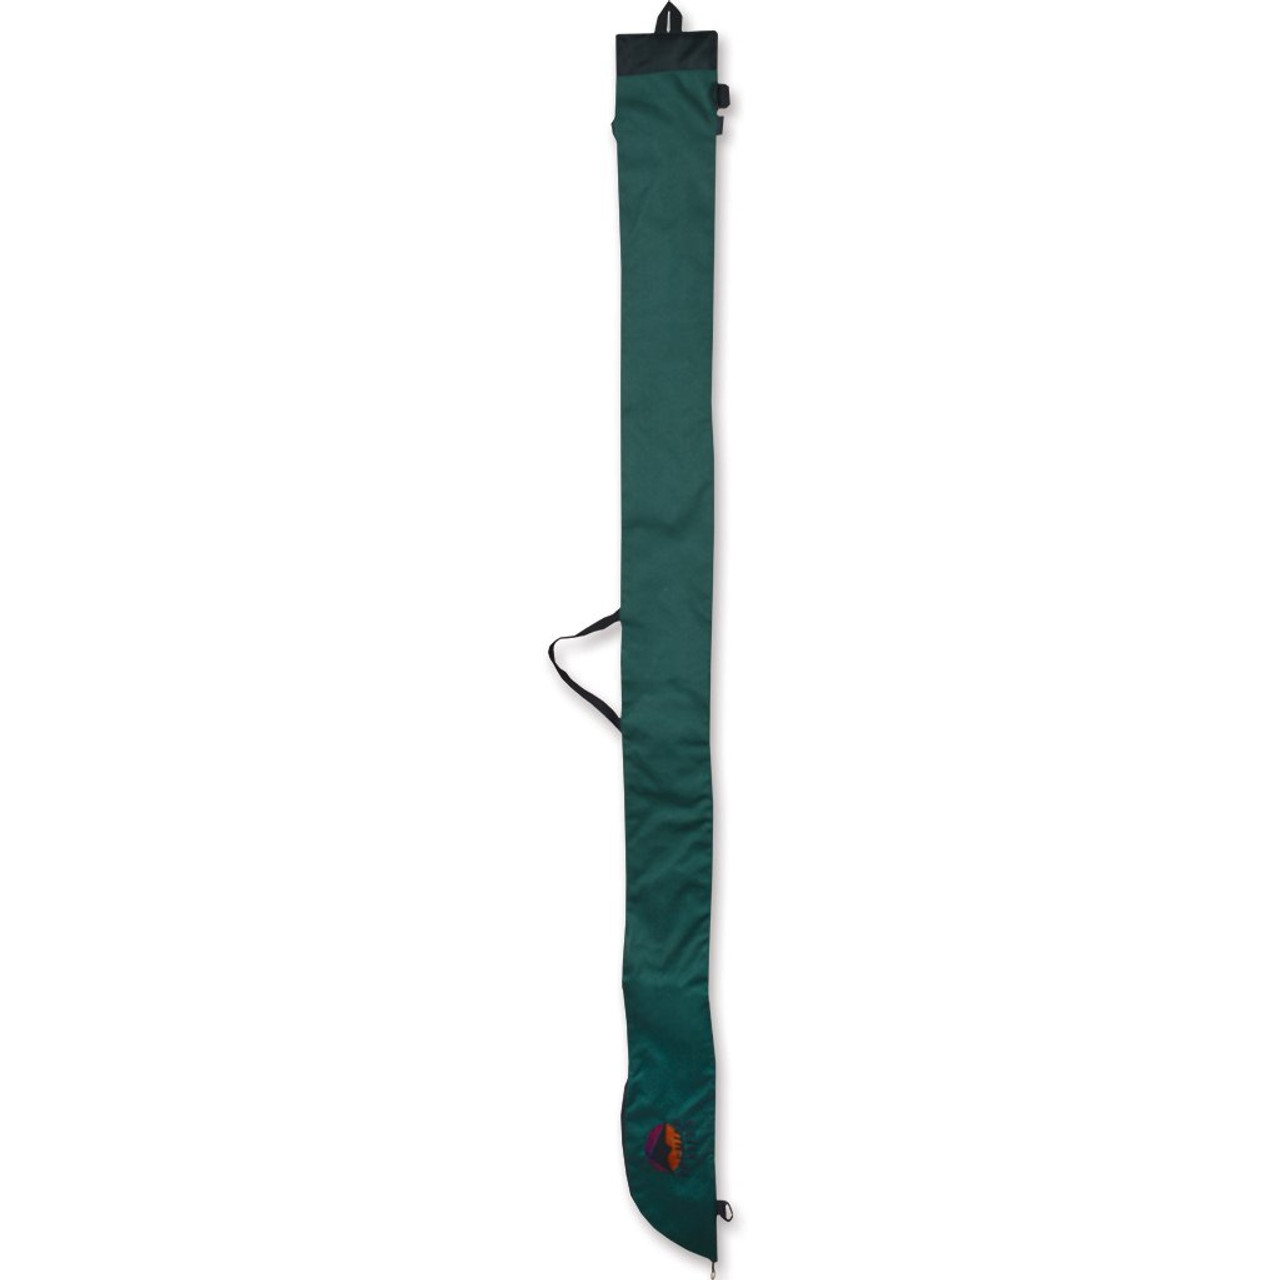 "68"" STUNT KITE CARRYING CASE"